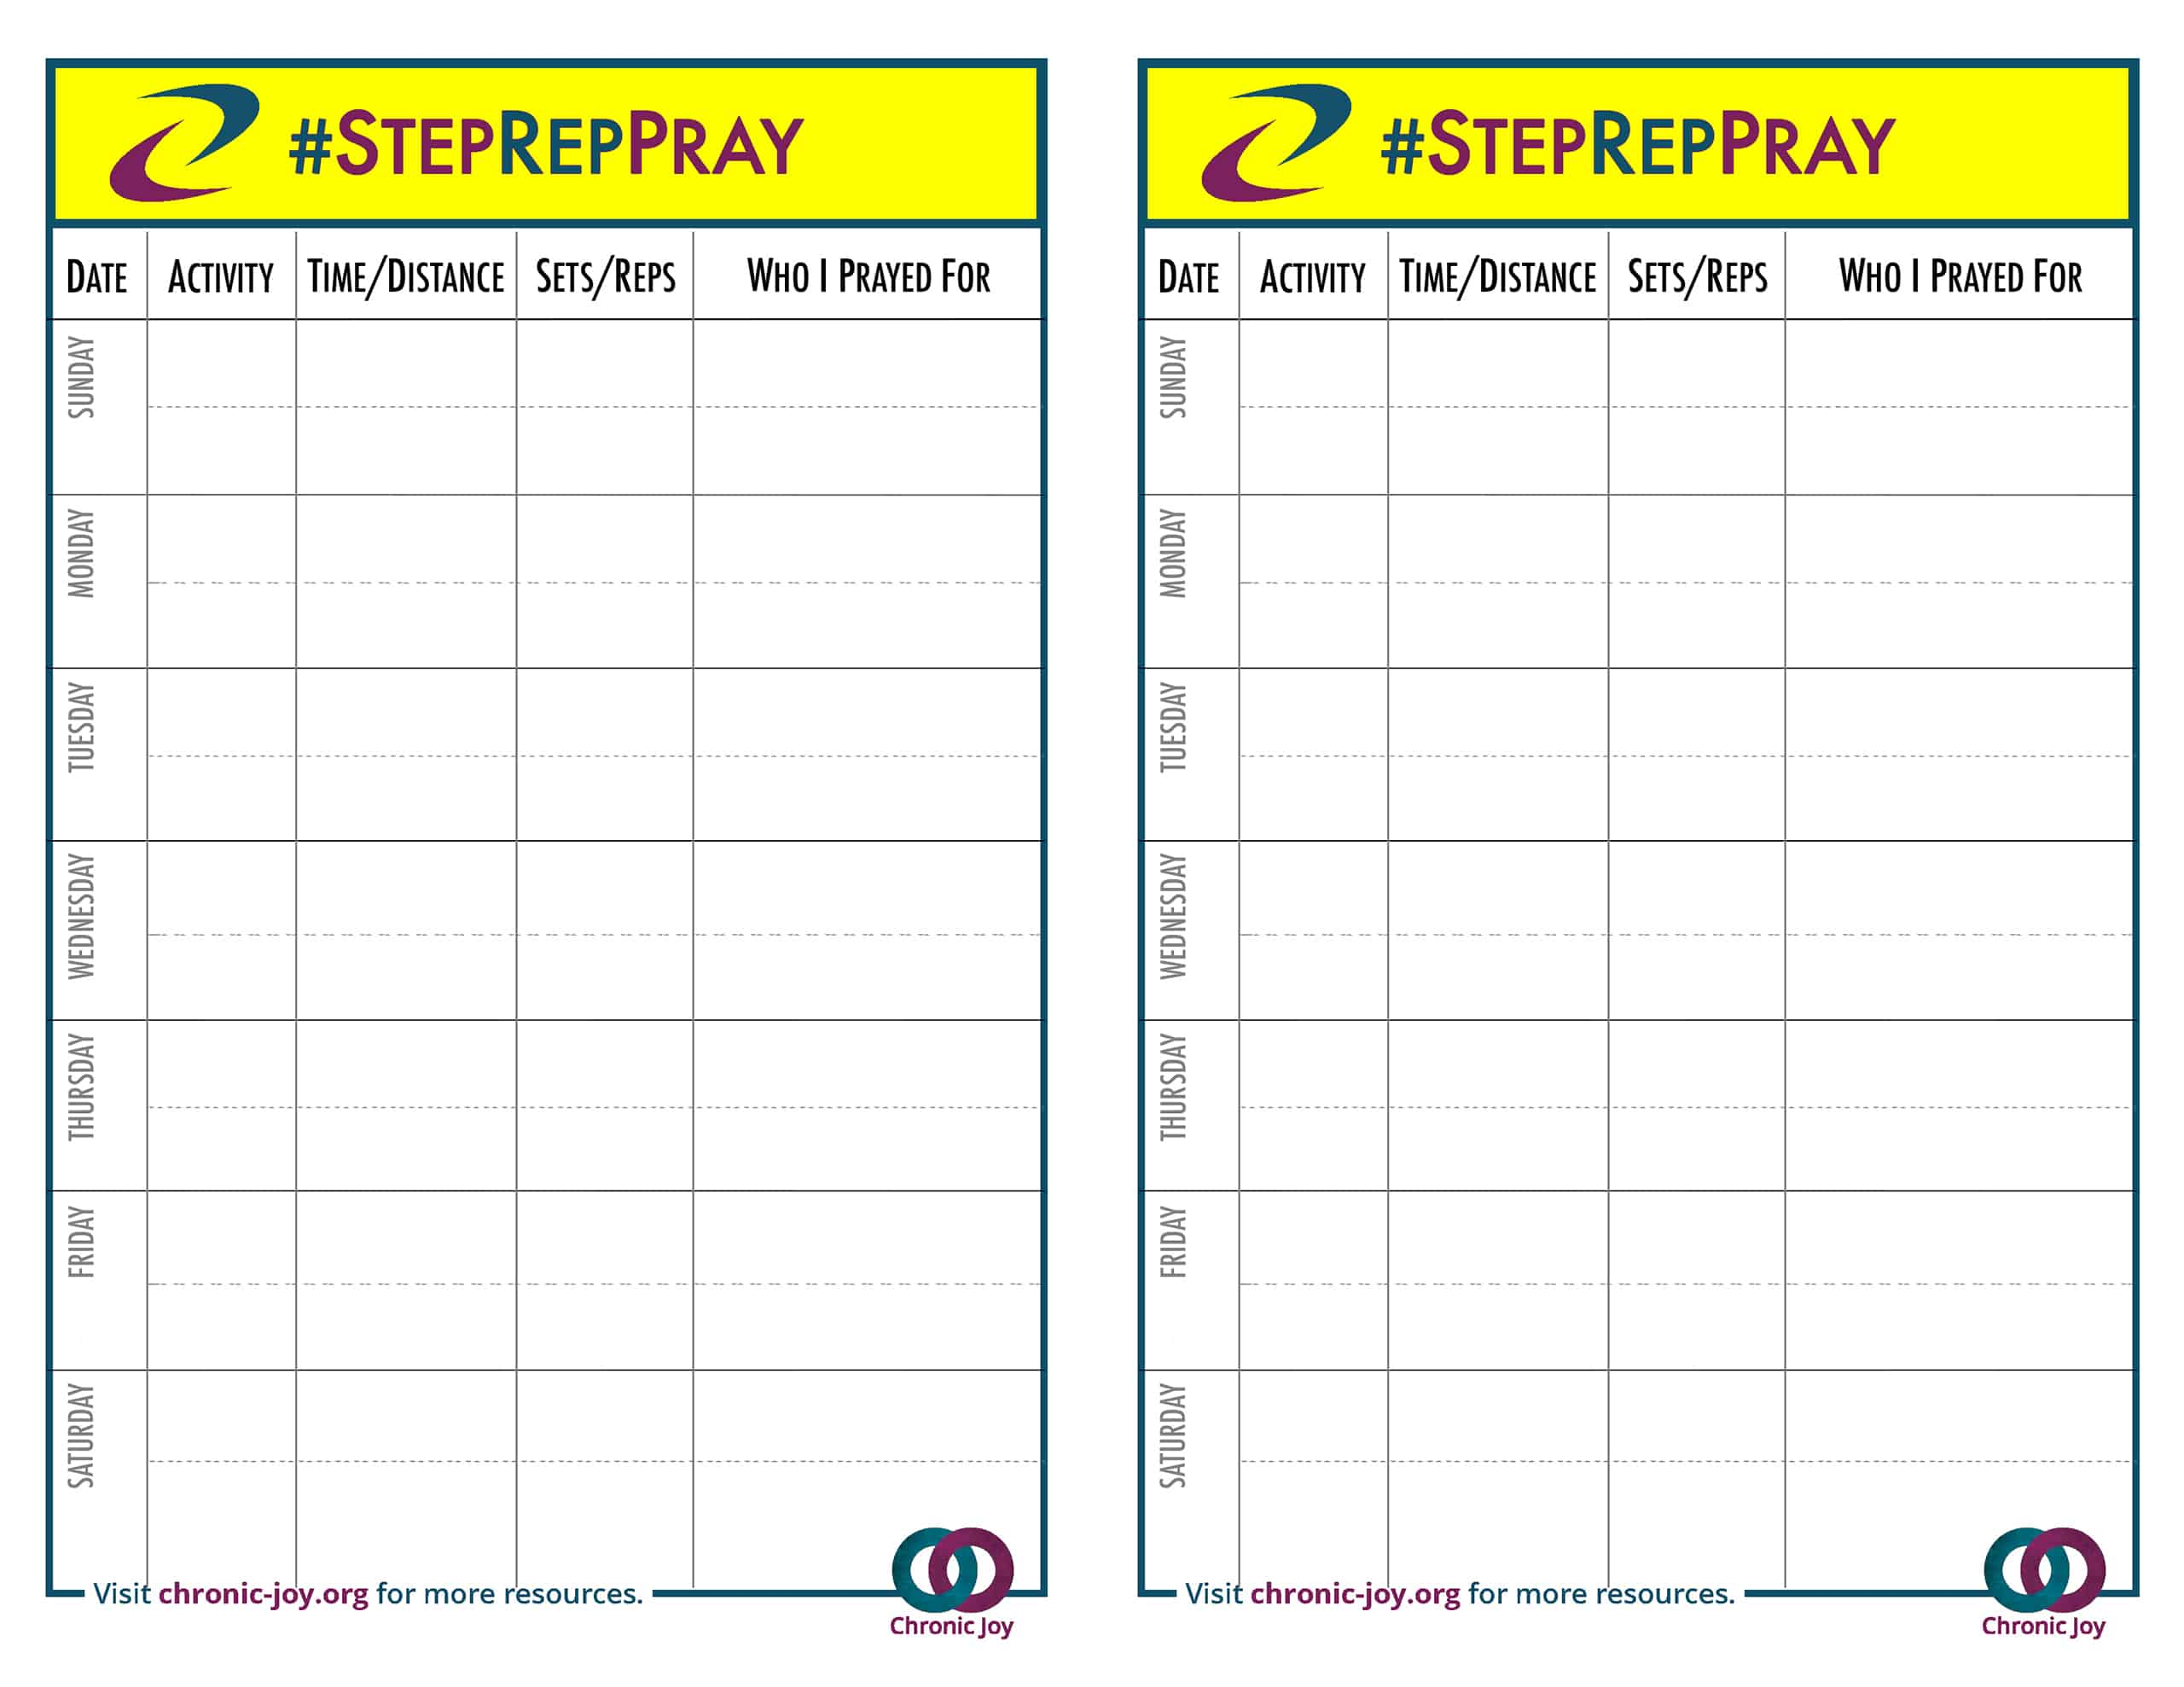 #StepRepPray Log Sheet